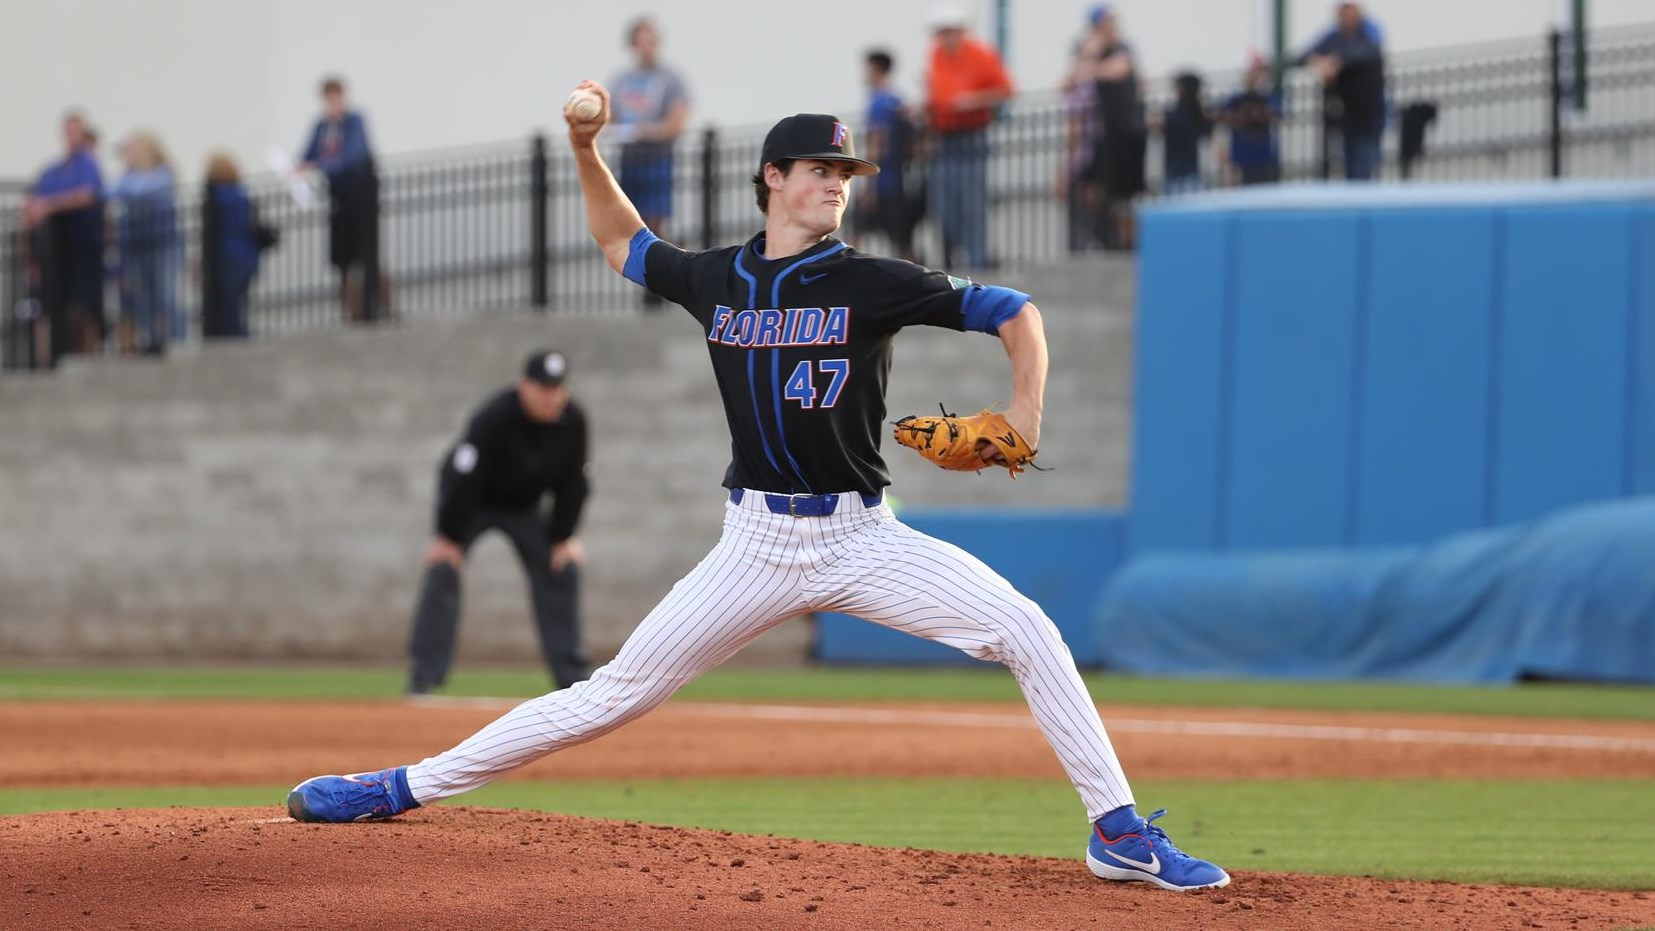 Tommy Mace - Baseball - Florida Gators